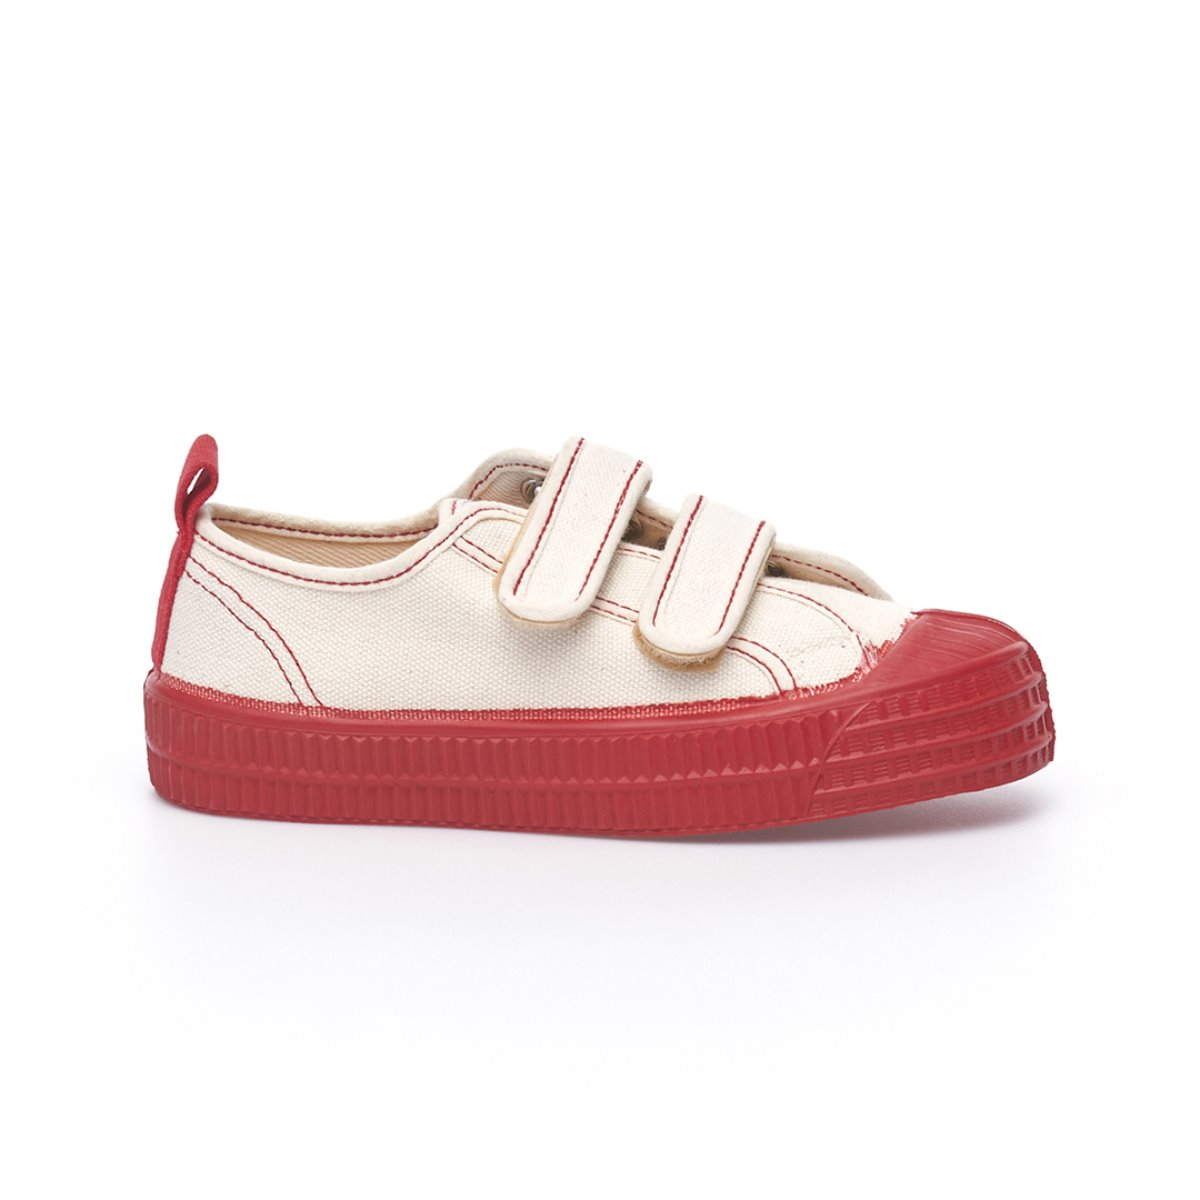 Star Master Kids Velcro Ecru/Red